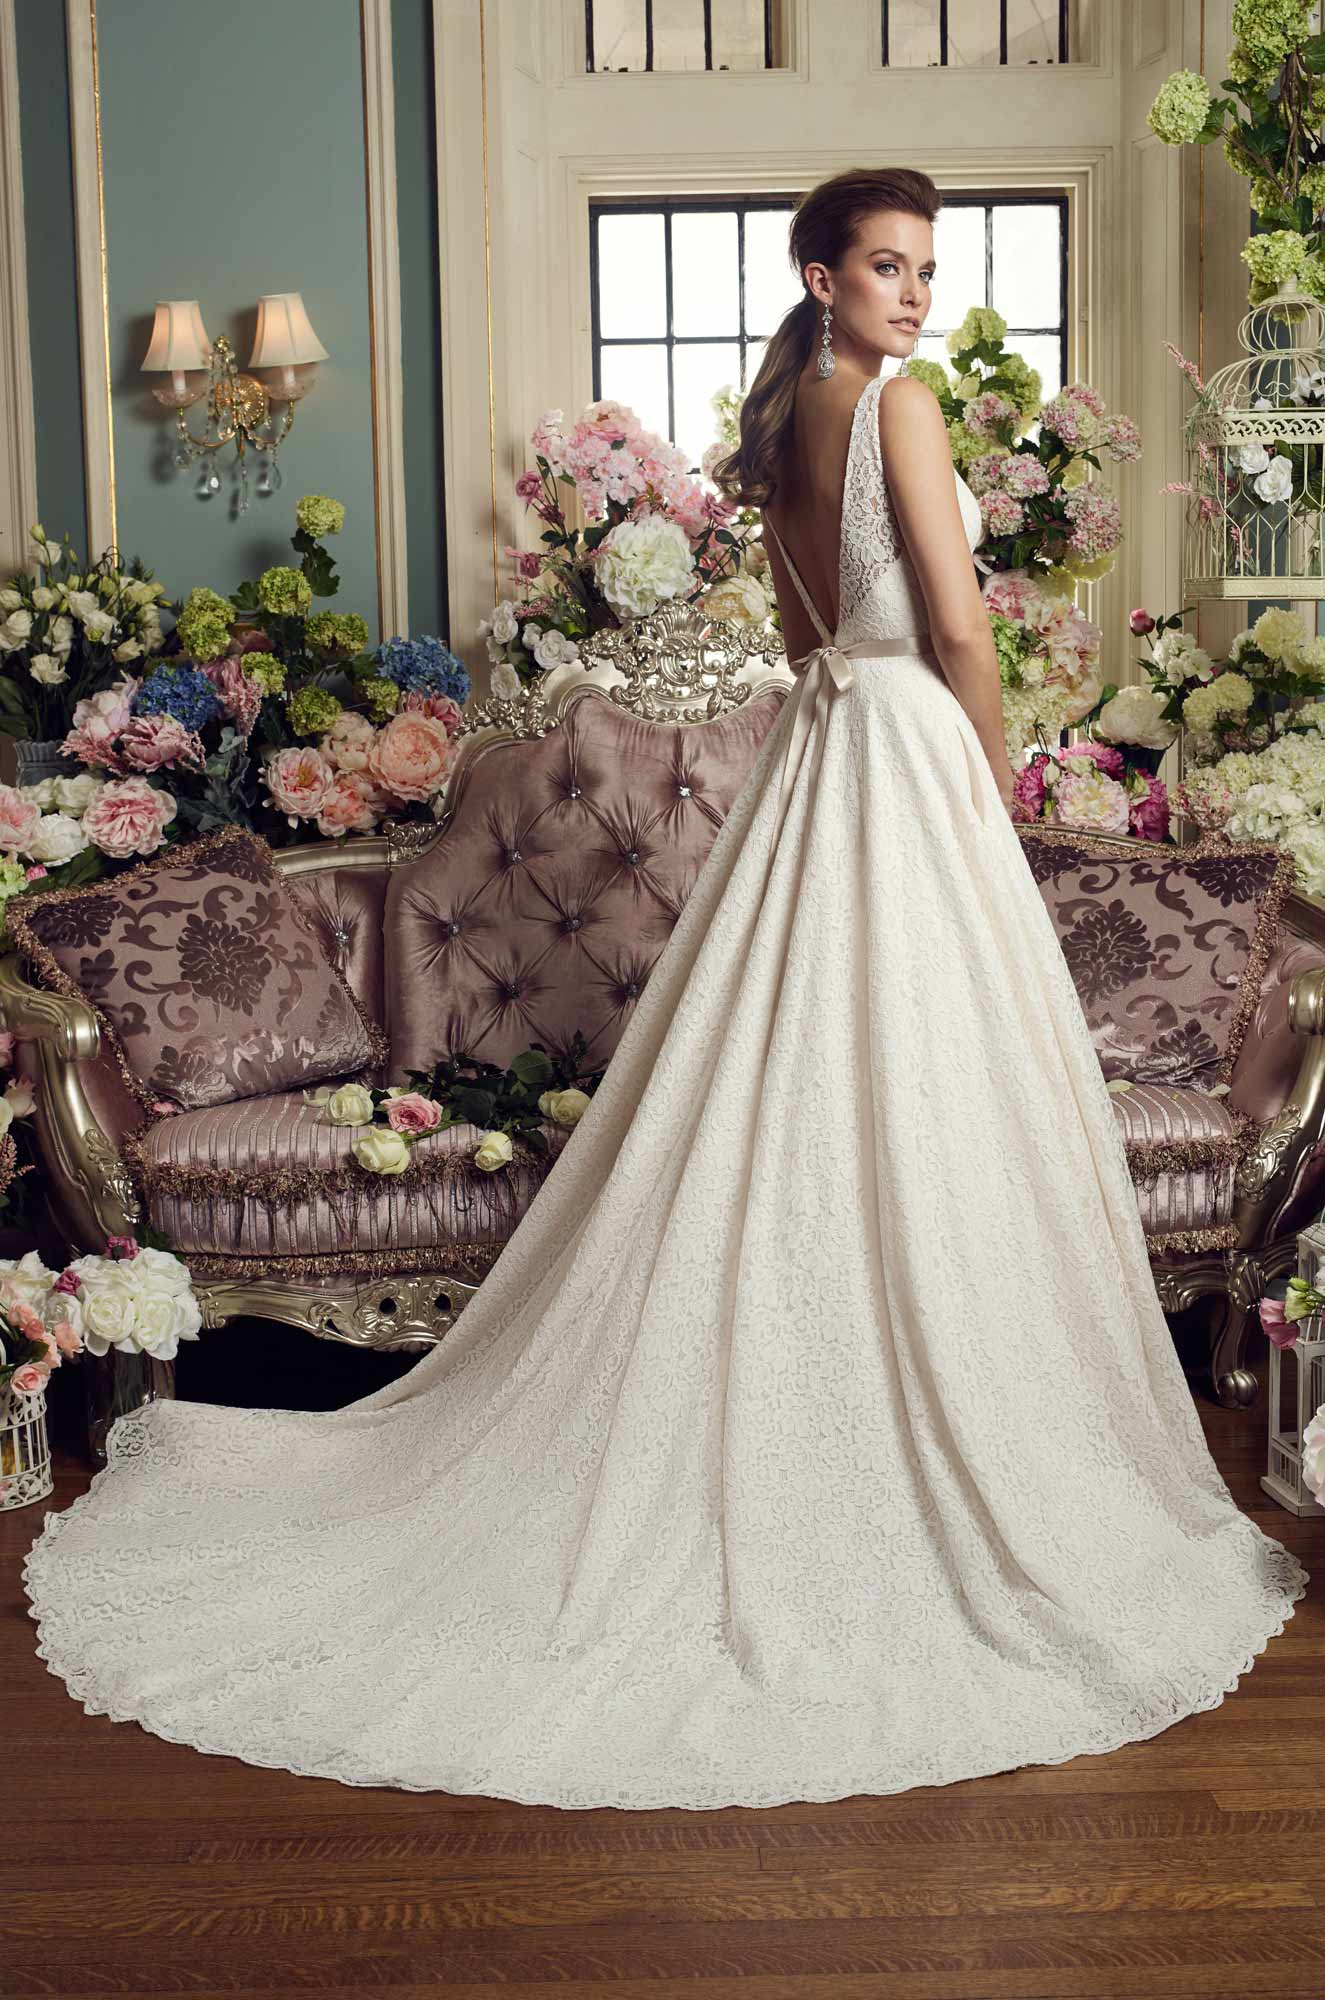 Lace Ball Gown Wedding Dress - Style #2167 | Mikaella Bridal